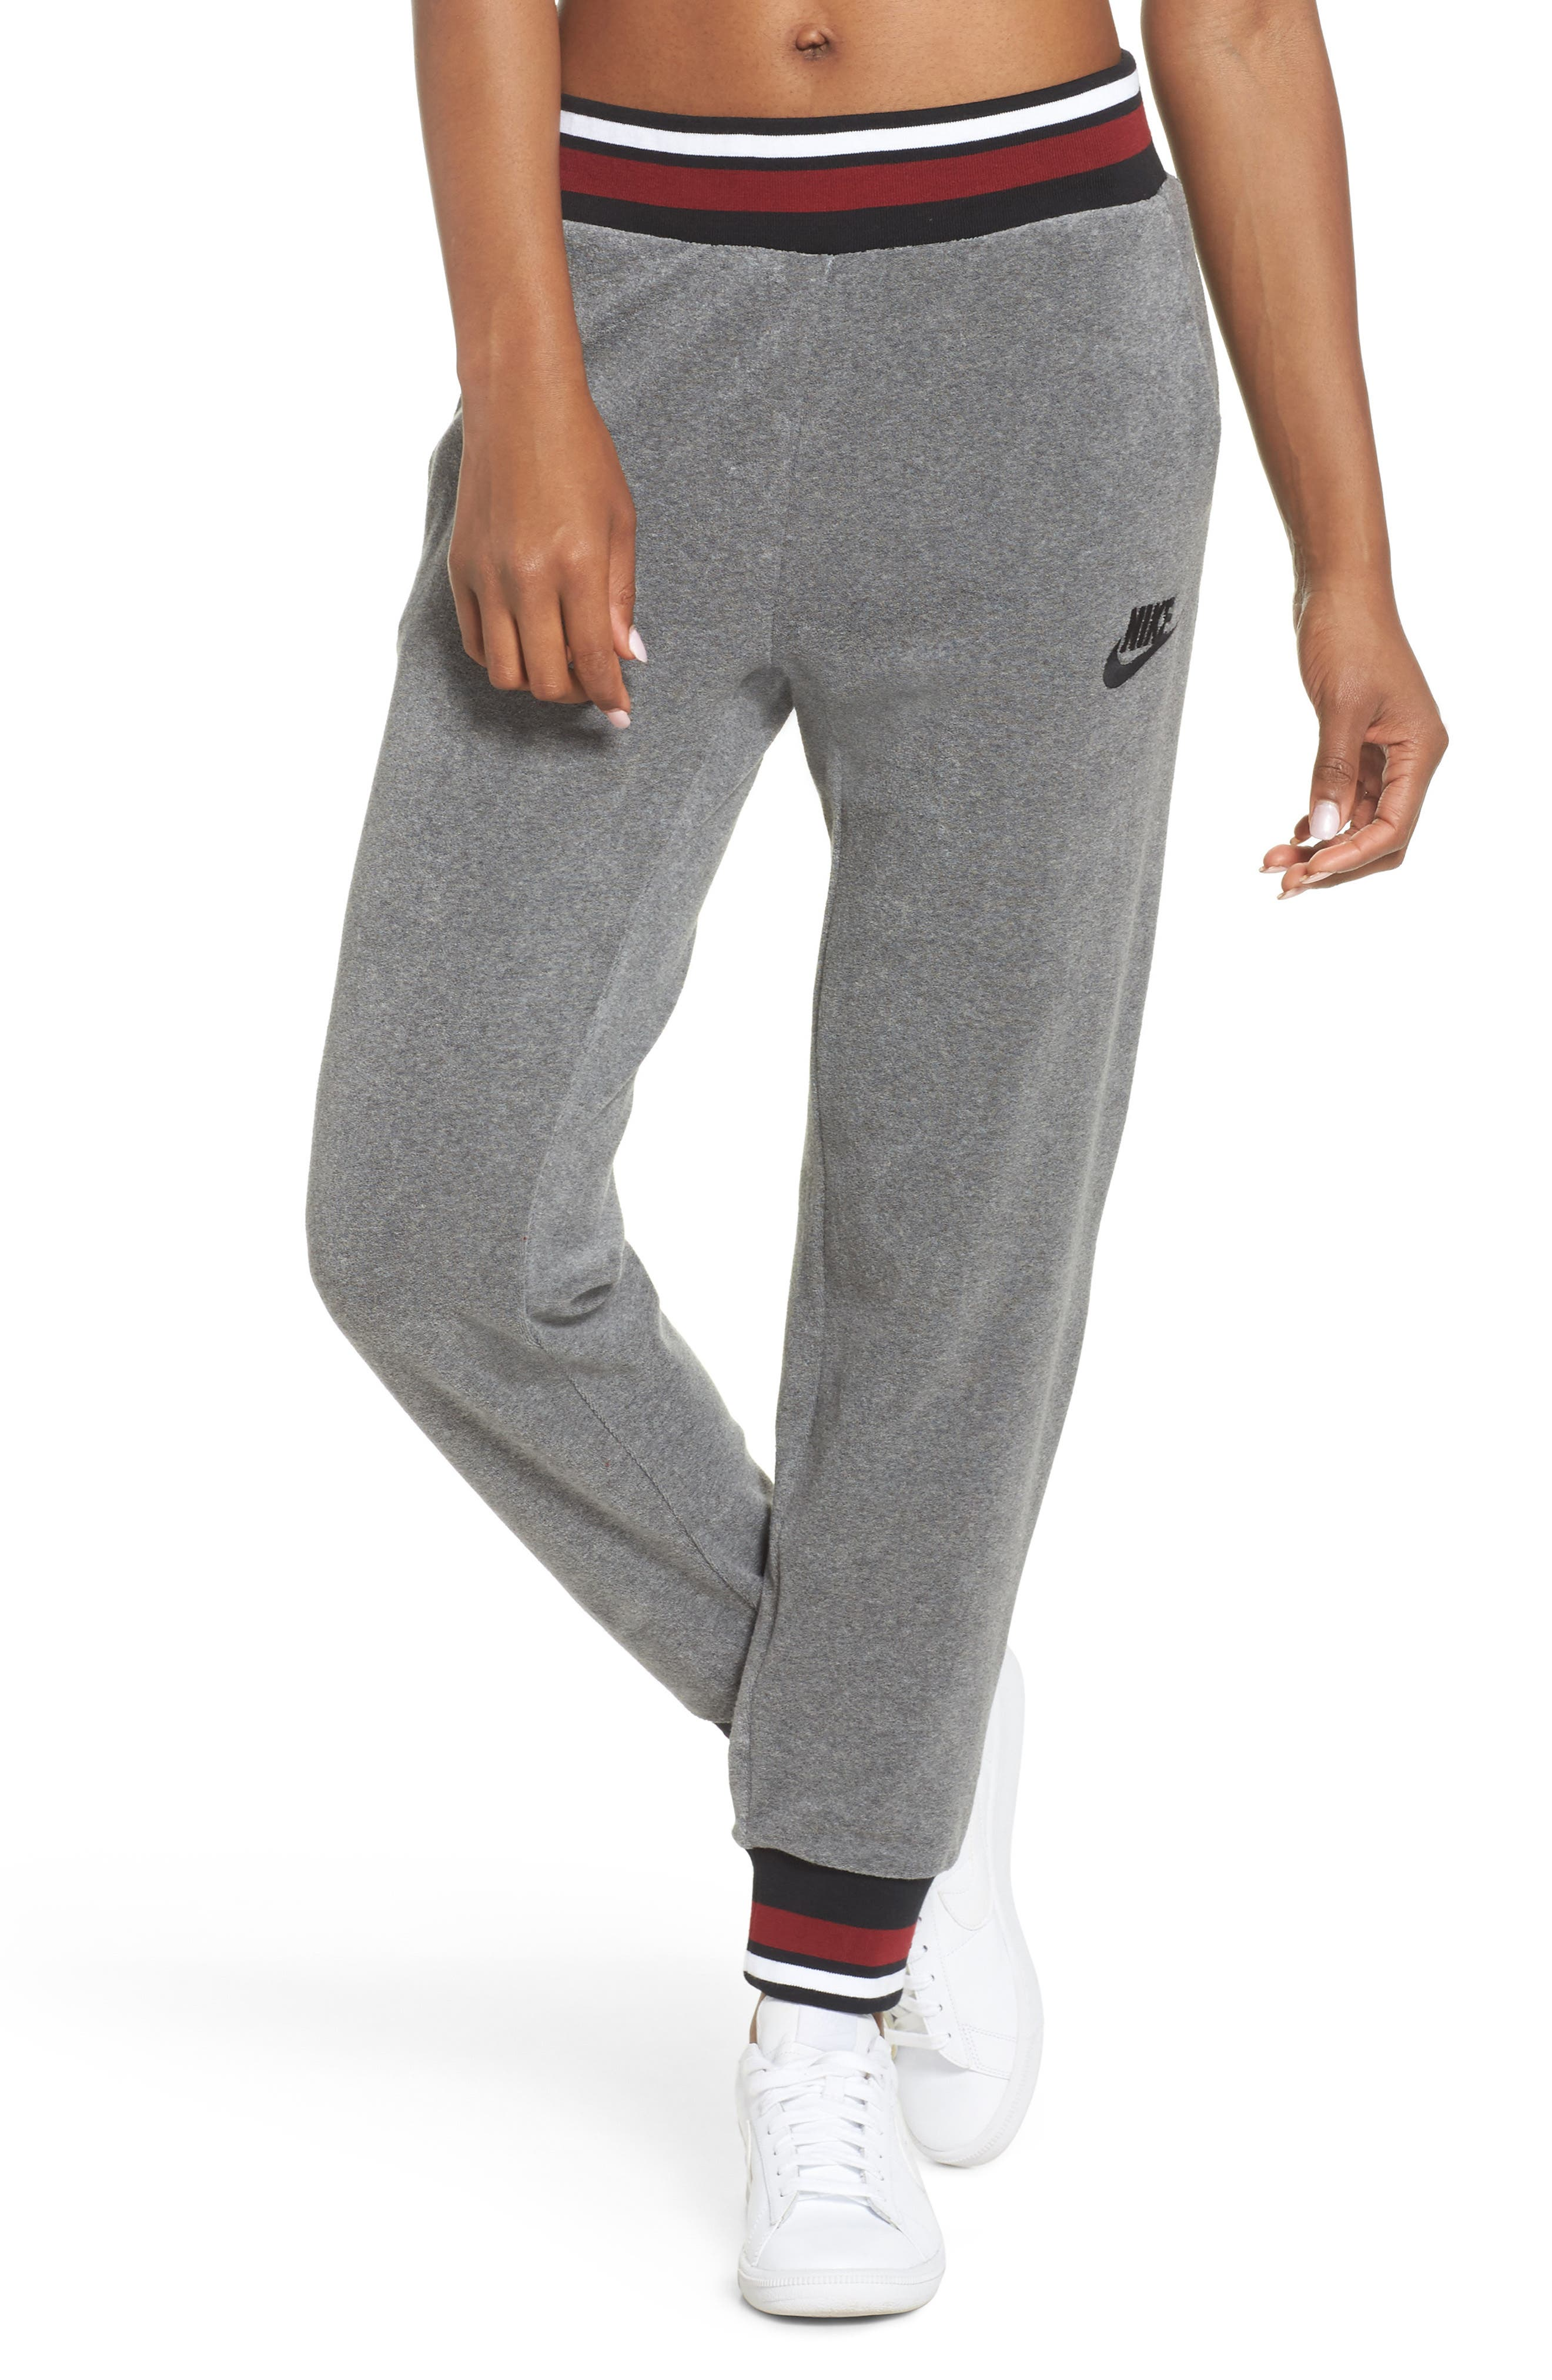 Sportswear French Terry Pants,                         Main,                         color, Carbon Heather/ Team Red